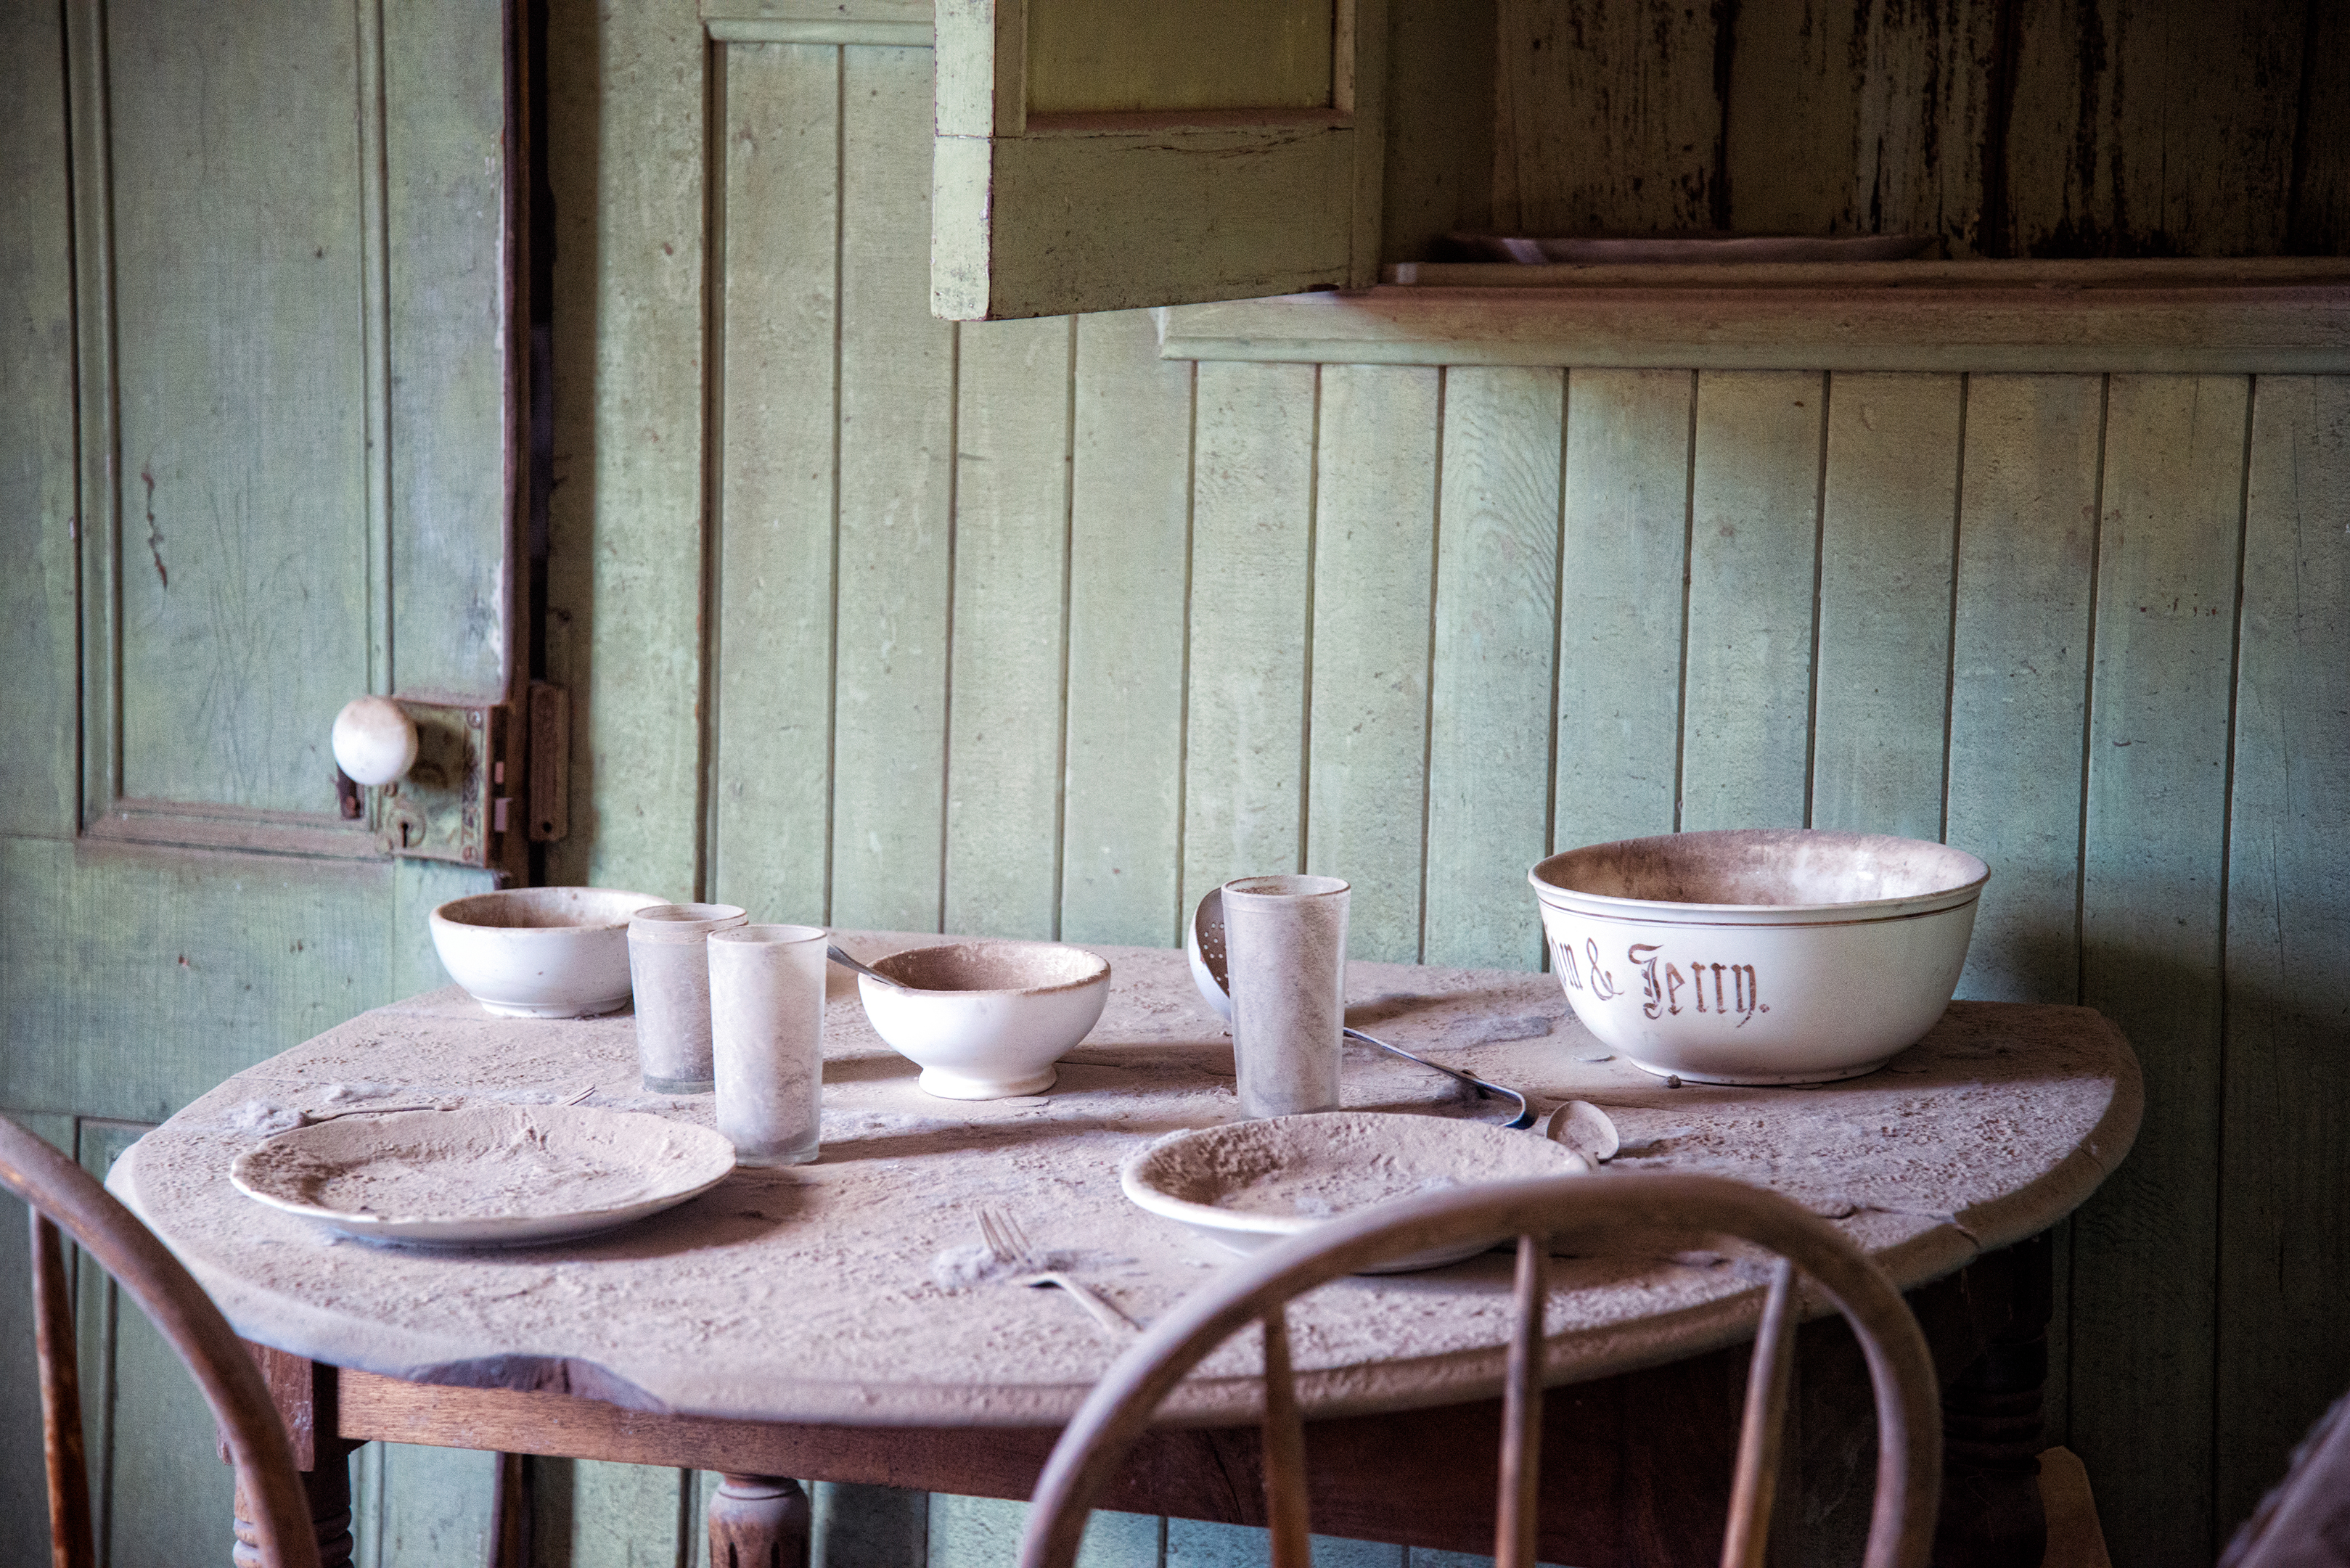 Abandoned Table-Bodie a ghost town